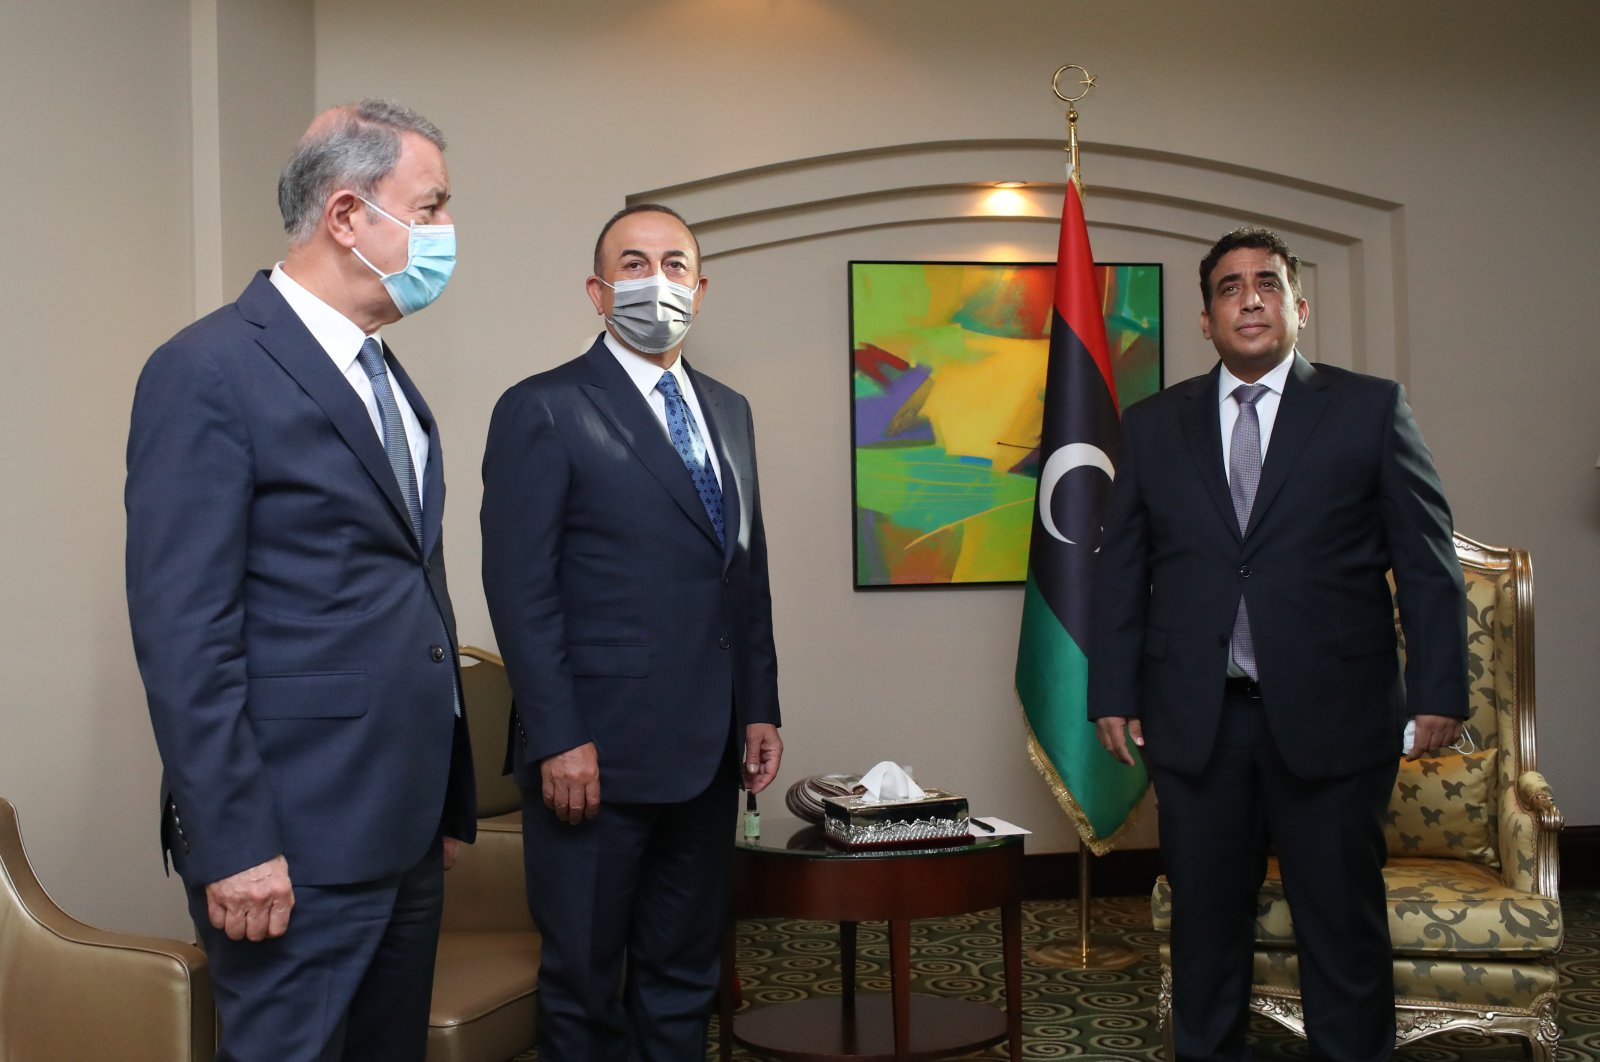 From left to right, Defense Minister Hulusi Akar, Foreign Minister Mevlüt Çavuşoğlu and head of Libya's Presidential Council, Mohammad Younes Menfi meet in Tripoli, Libya, May 3, 2021. (AA Photo)